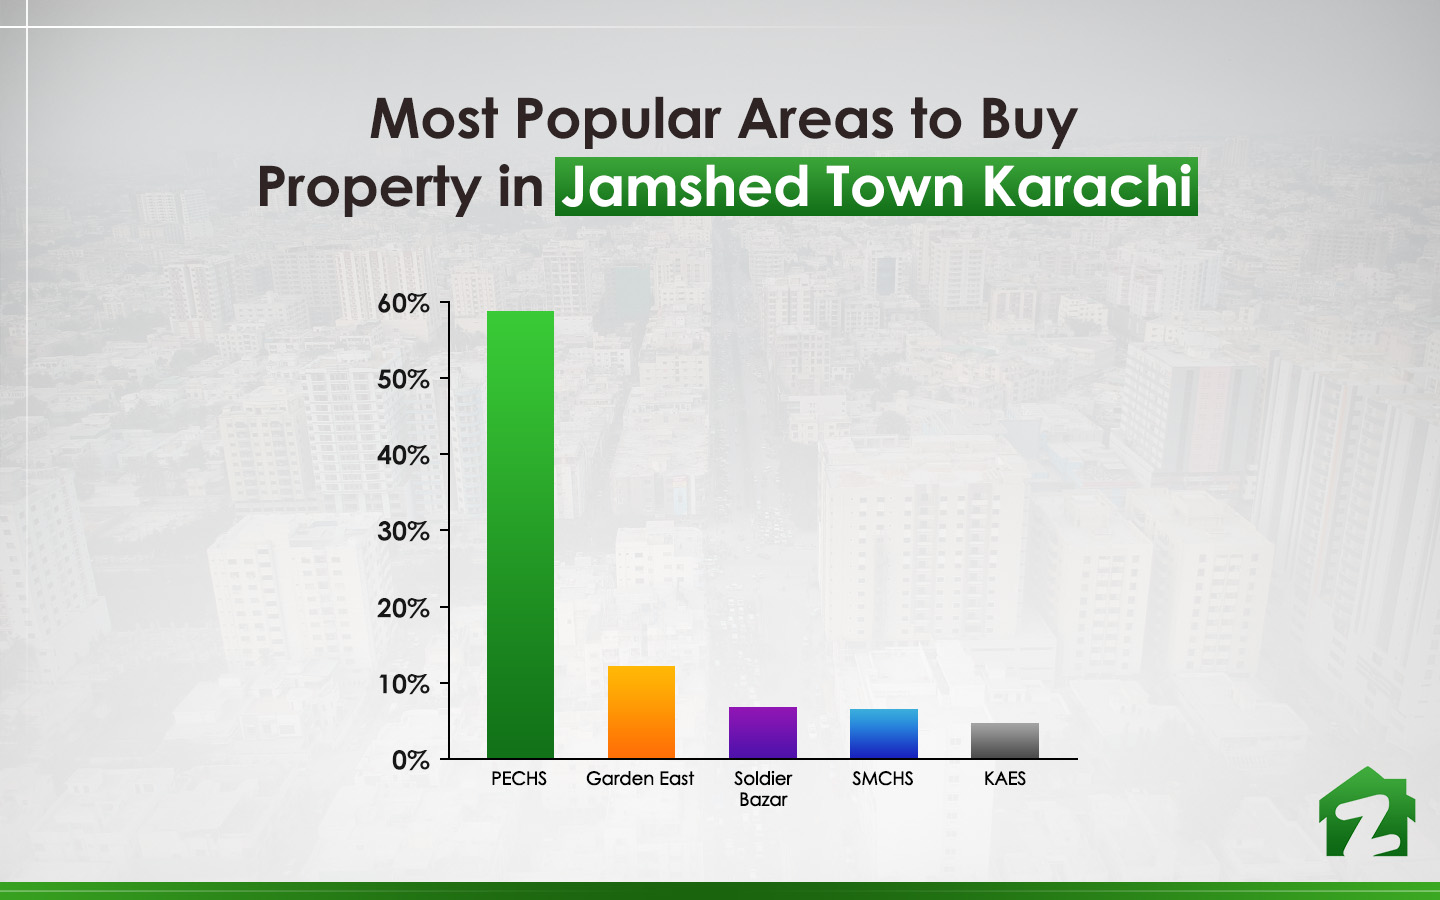 Top 5 areas to buy property in Jamshed Town